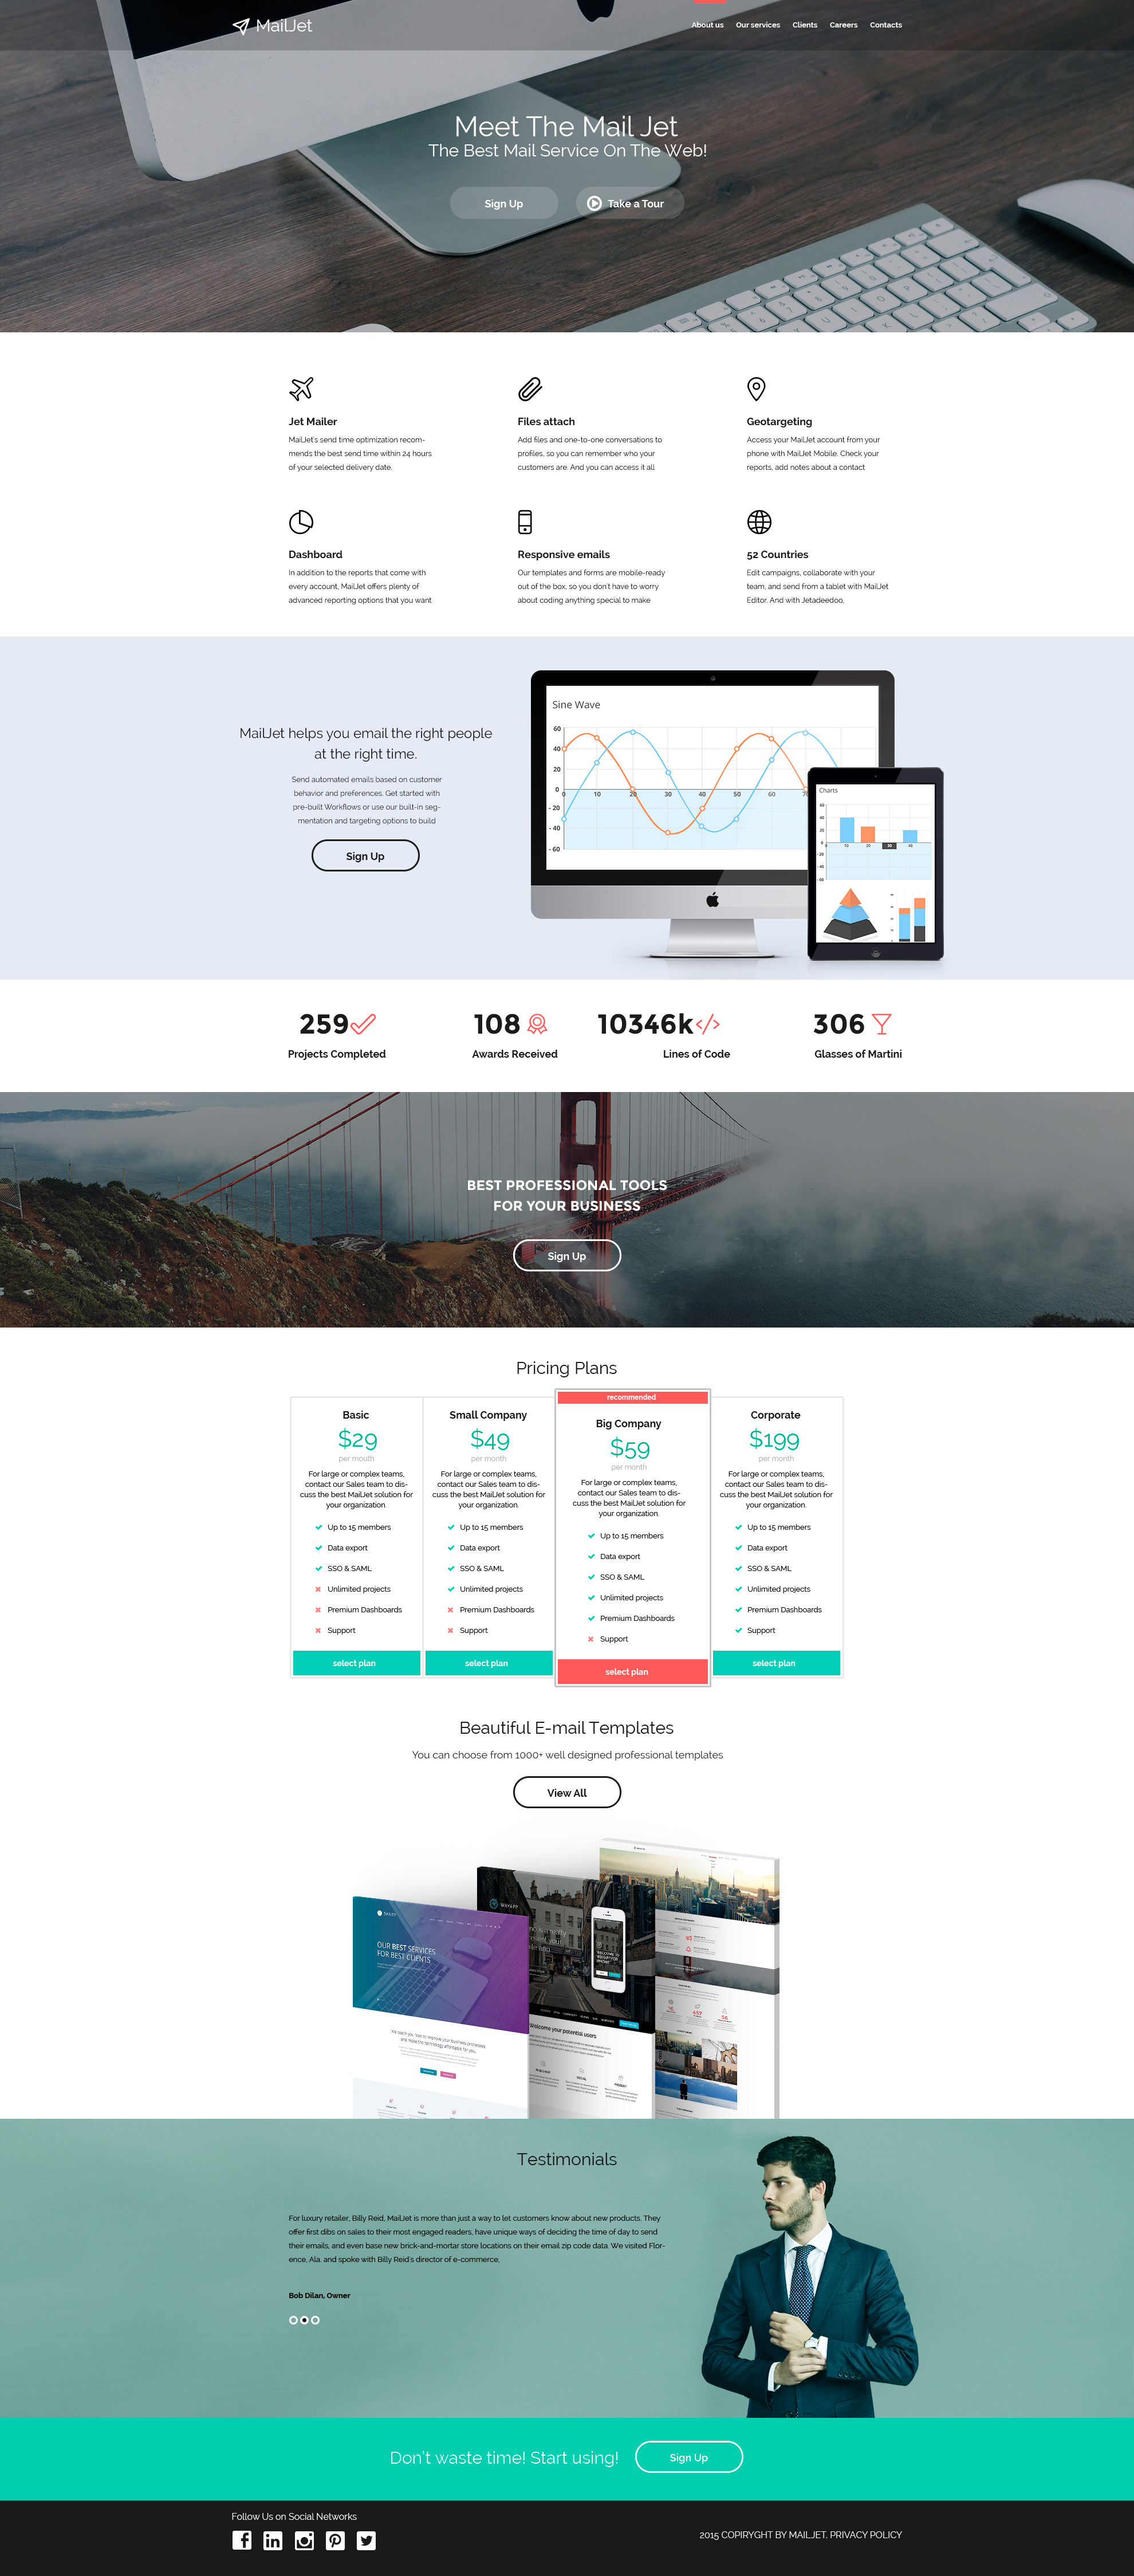 Email Services Website Templates | TemplateMonster